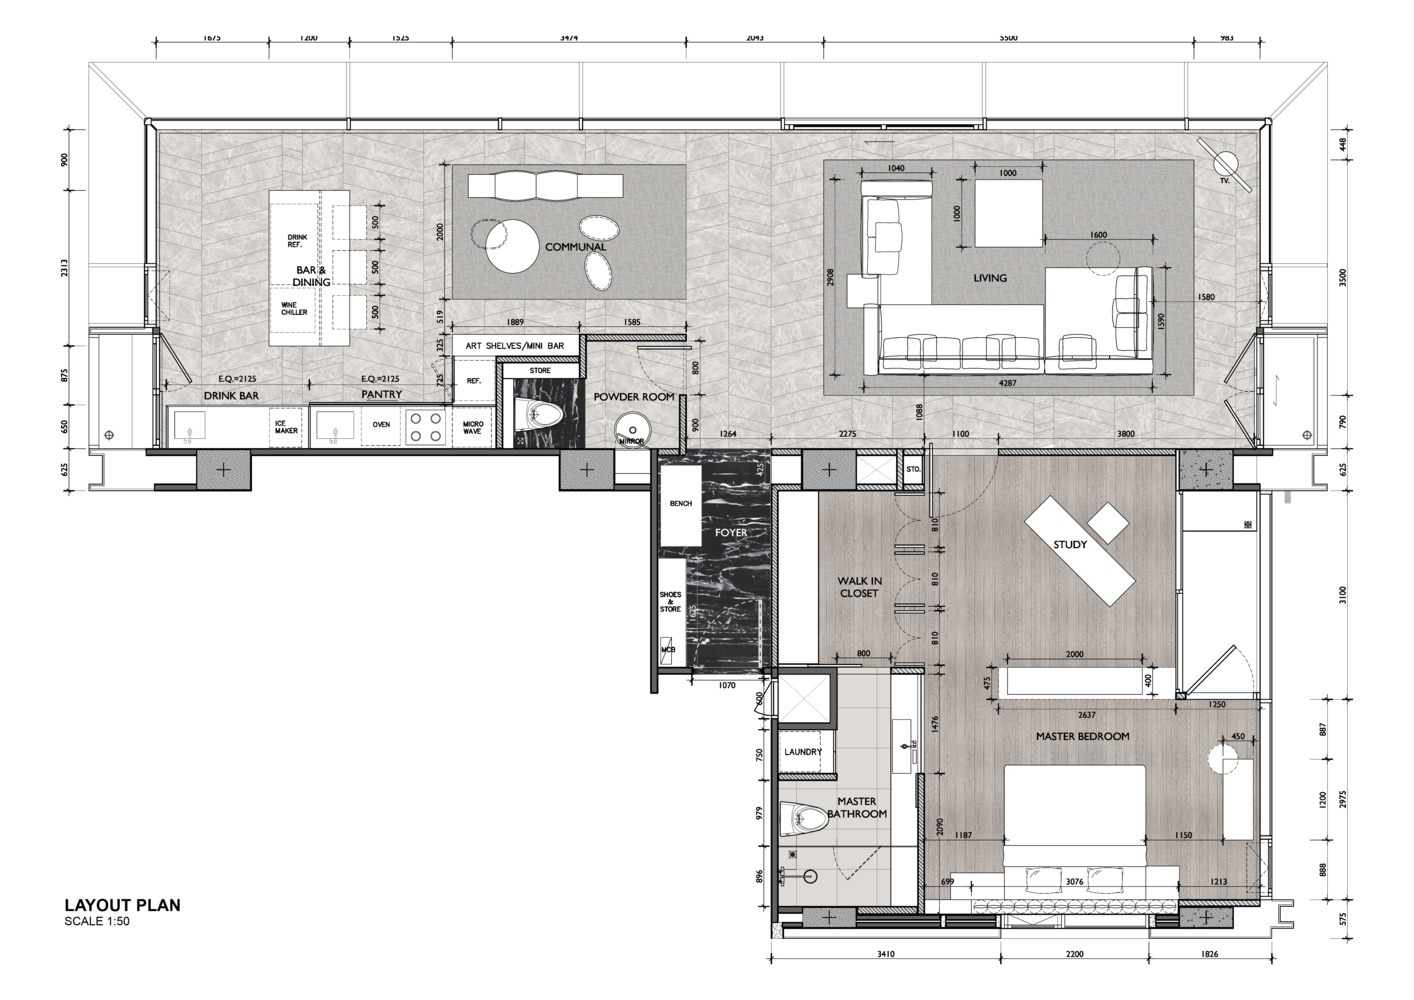 Fhm Bachelor Apartment Ong Pte Ltd Layout Colored Plan